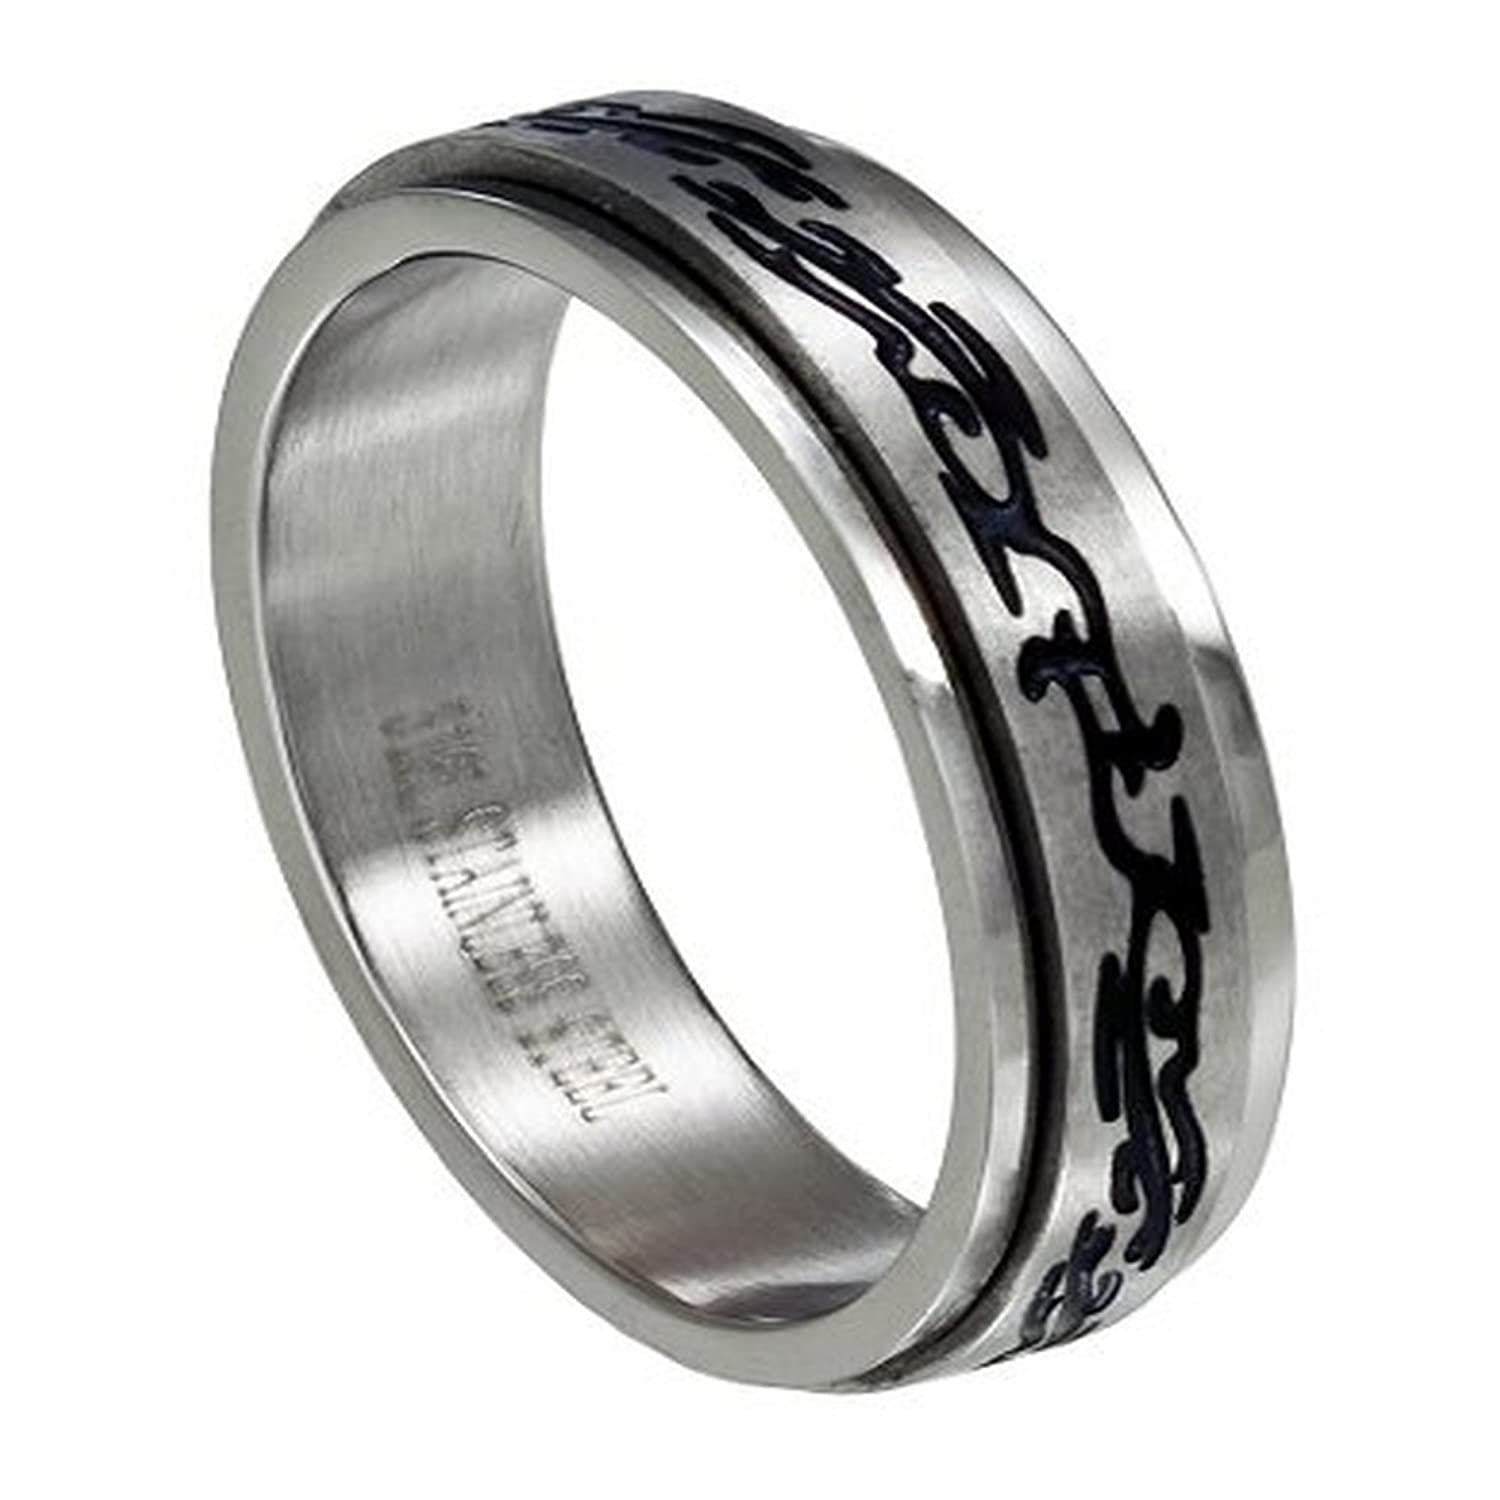 Men's 6mm Stainless Steel Two Tone Spinner Ring with Black Tribal Design